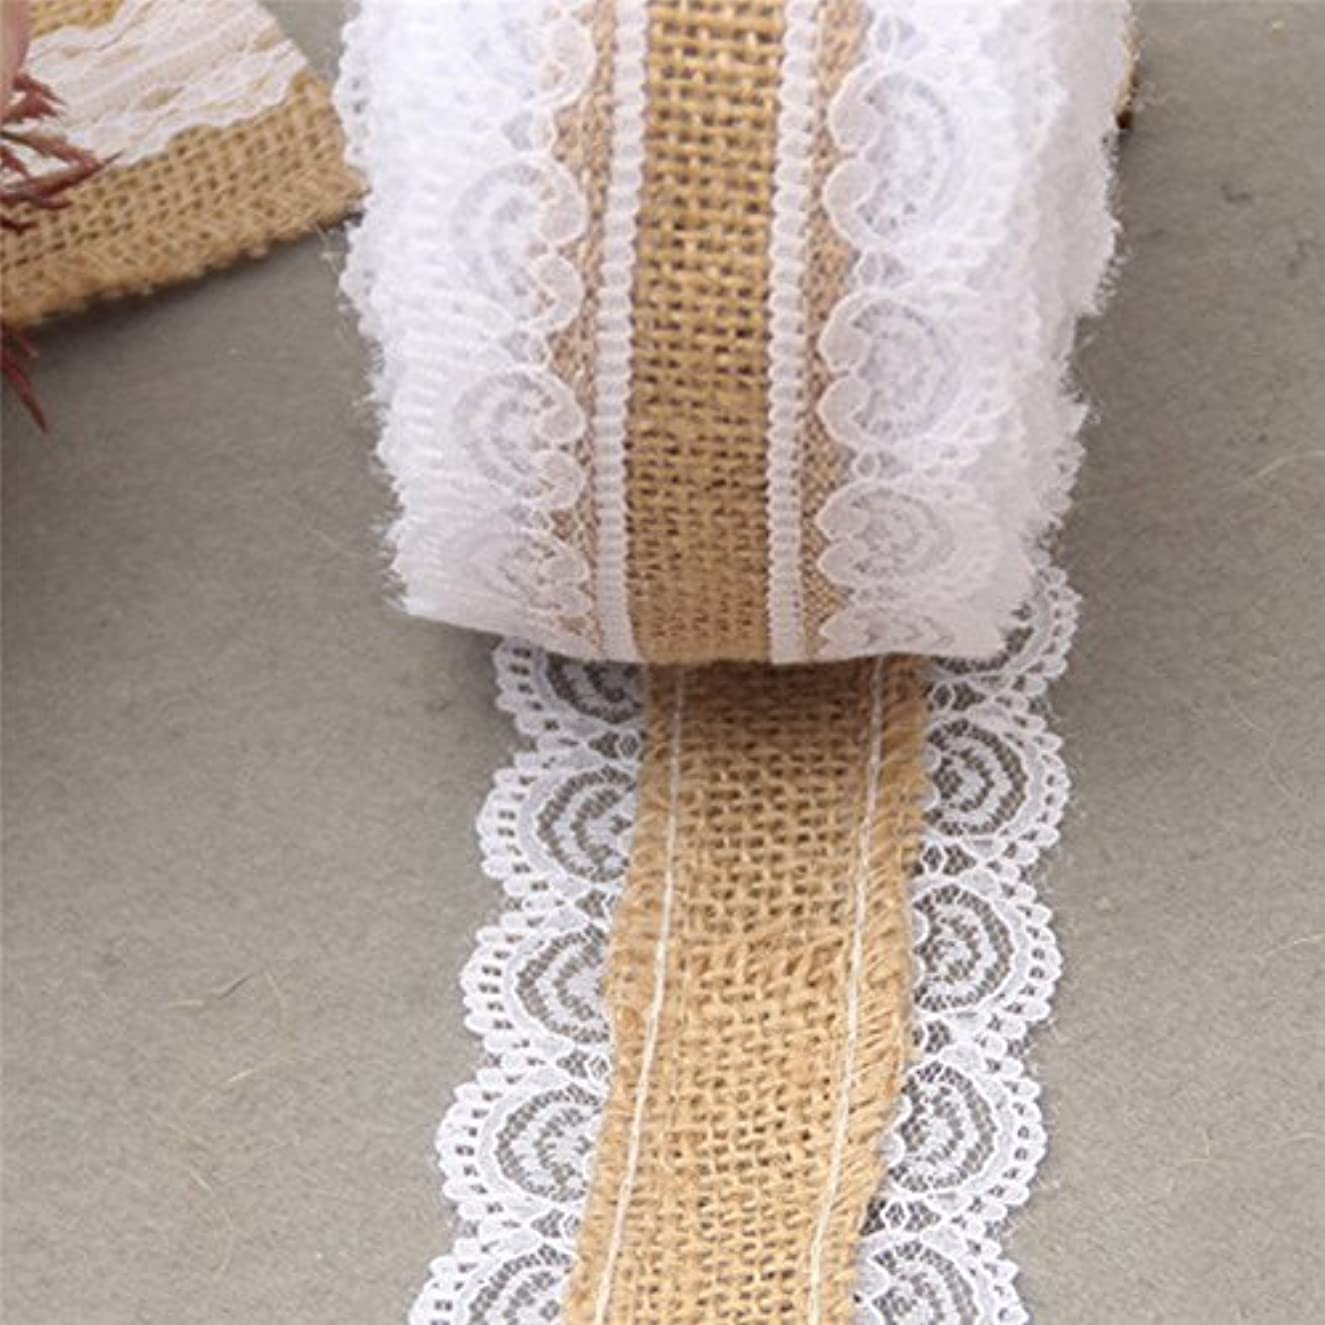 10 Yards Natural Jute Burlap Hessian Lace Ribbon Roll + White Lace Vintage Wedding Decoration Party Decorations Crafts Decorative